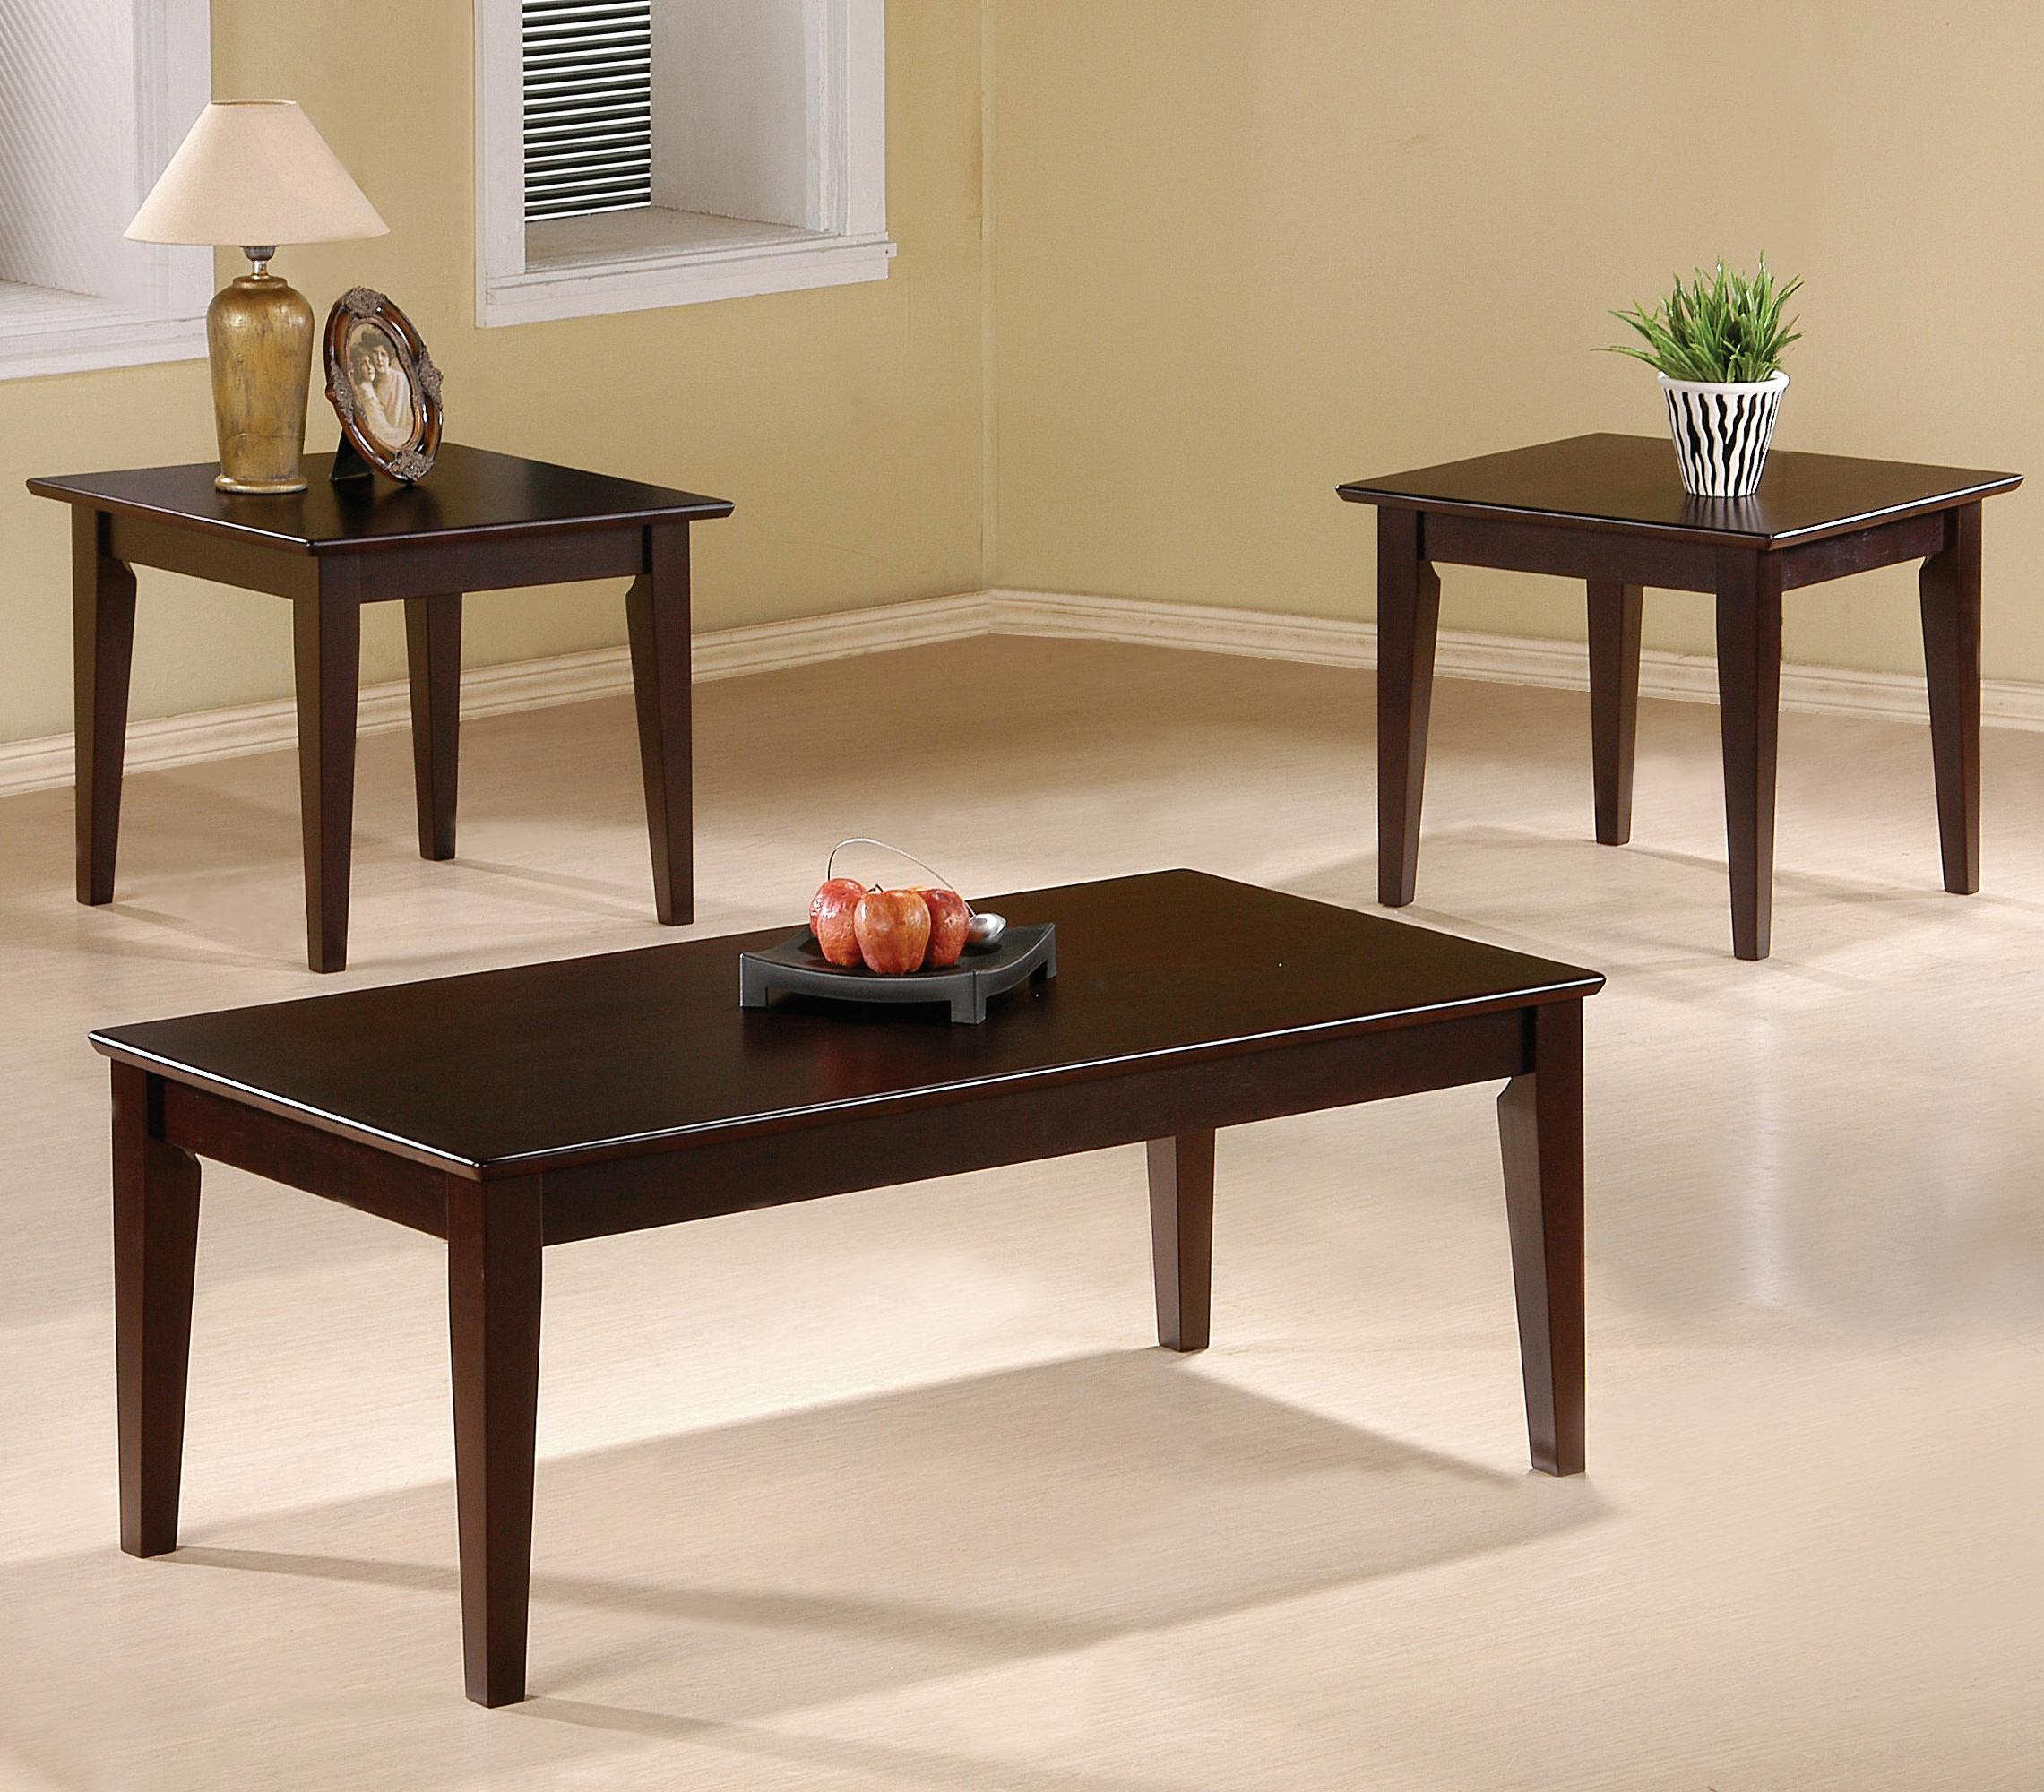 3 Piece Occasional Table Sets 3 Piece Occasional Table Set